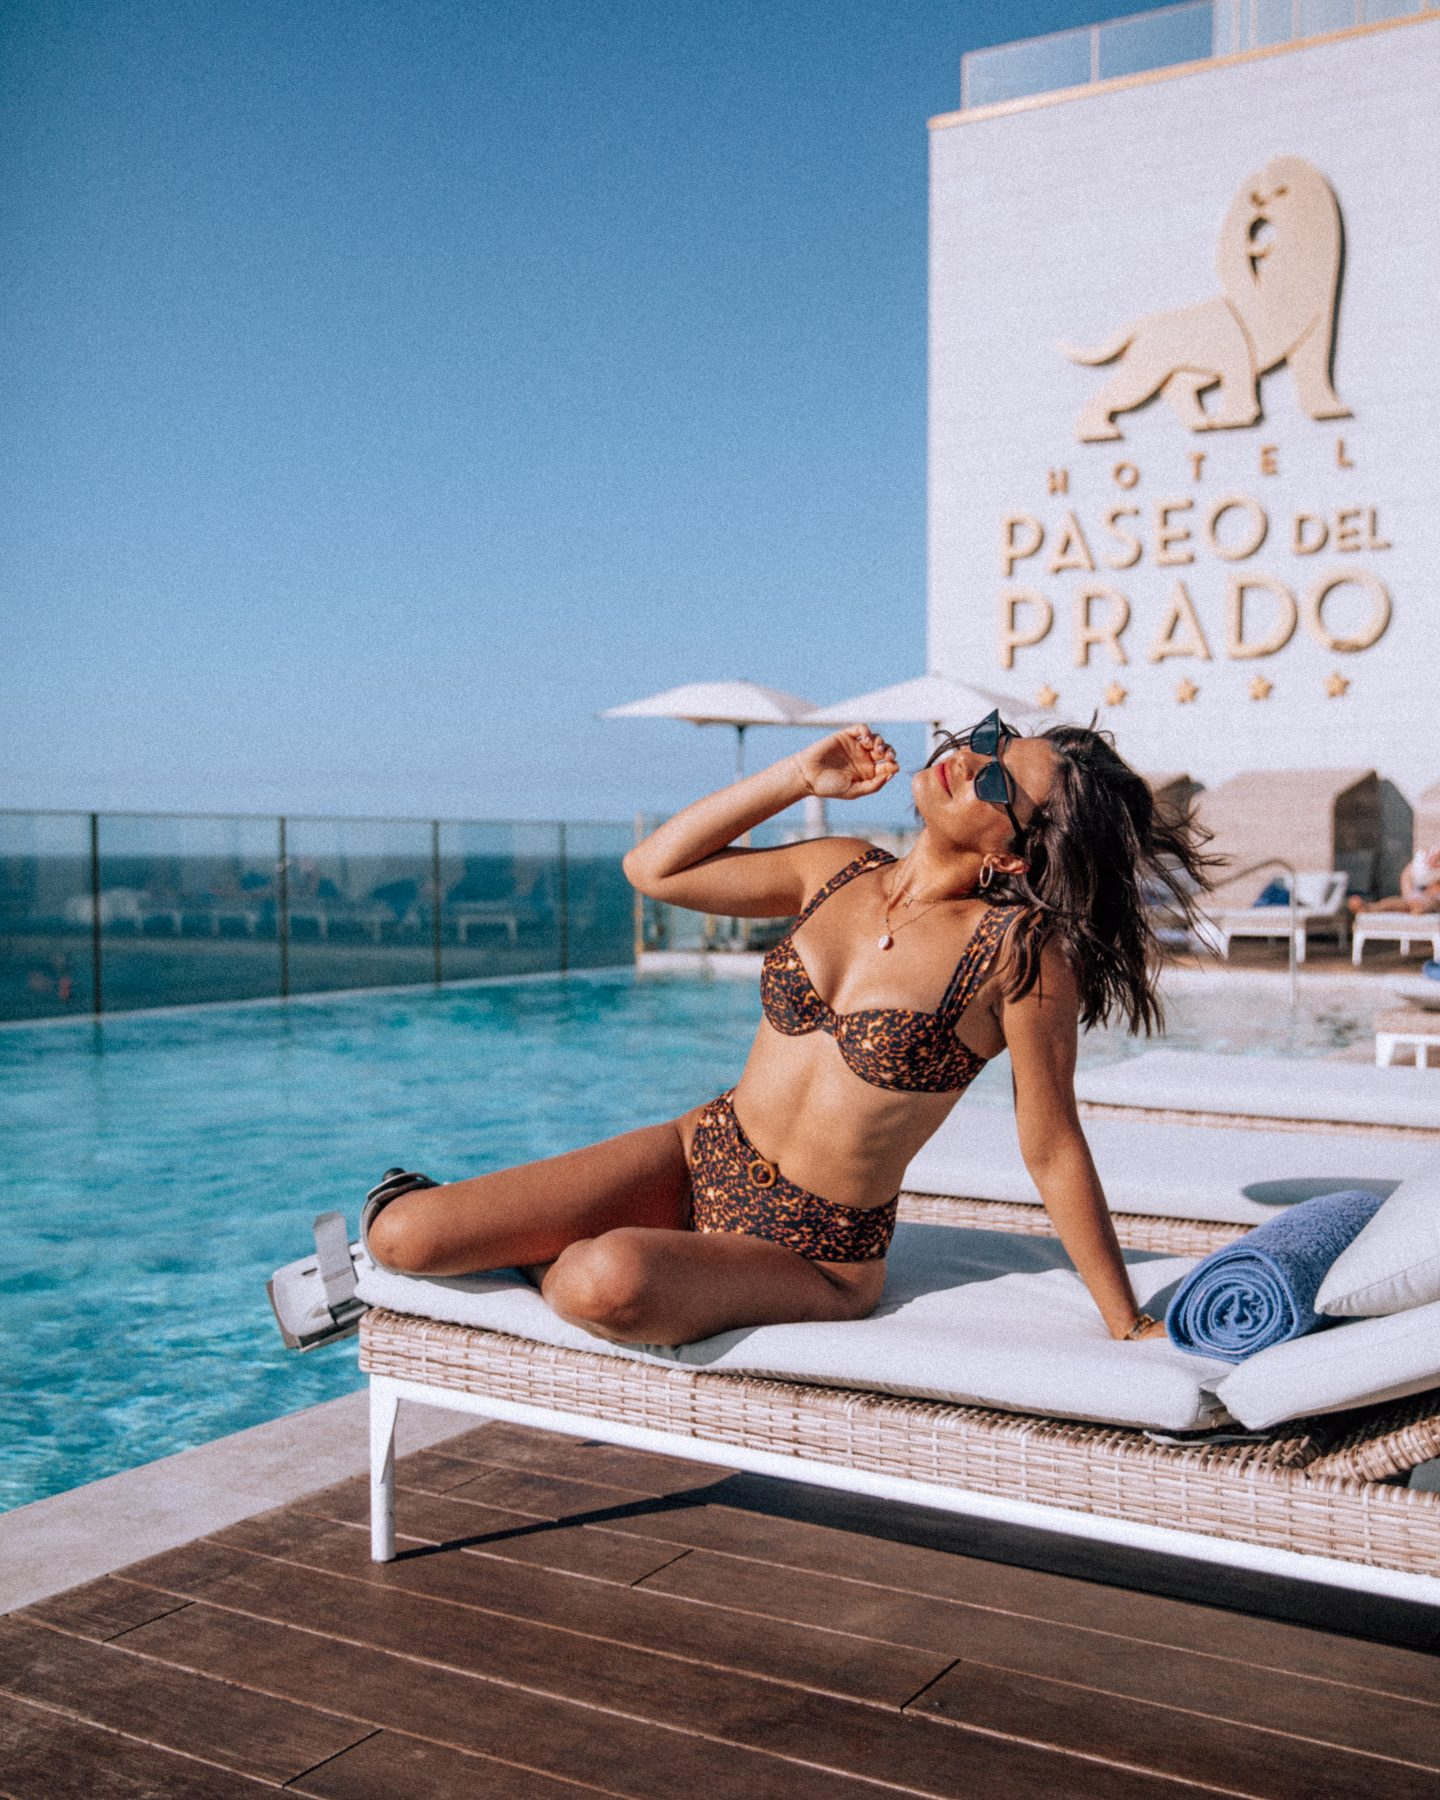 Lisa Homsy in Cuba with a broken ankle posing by the pool for an Instagram picture idea